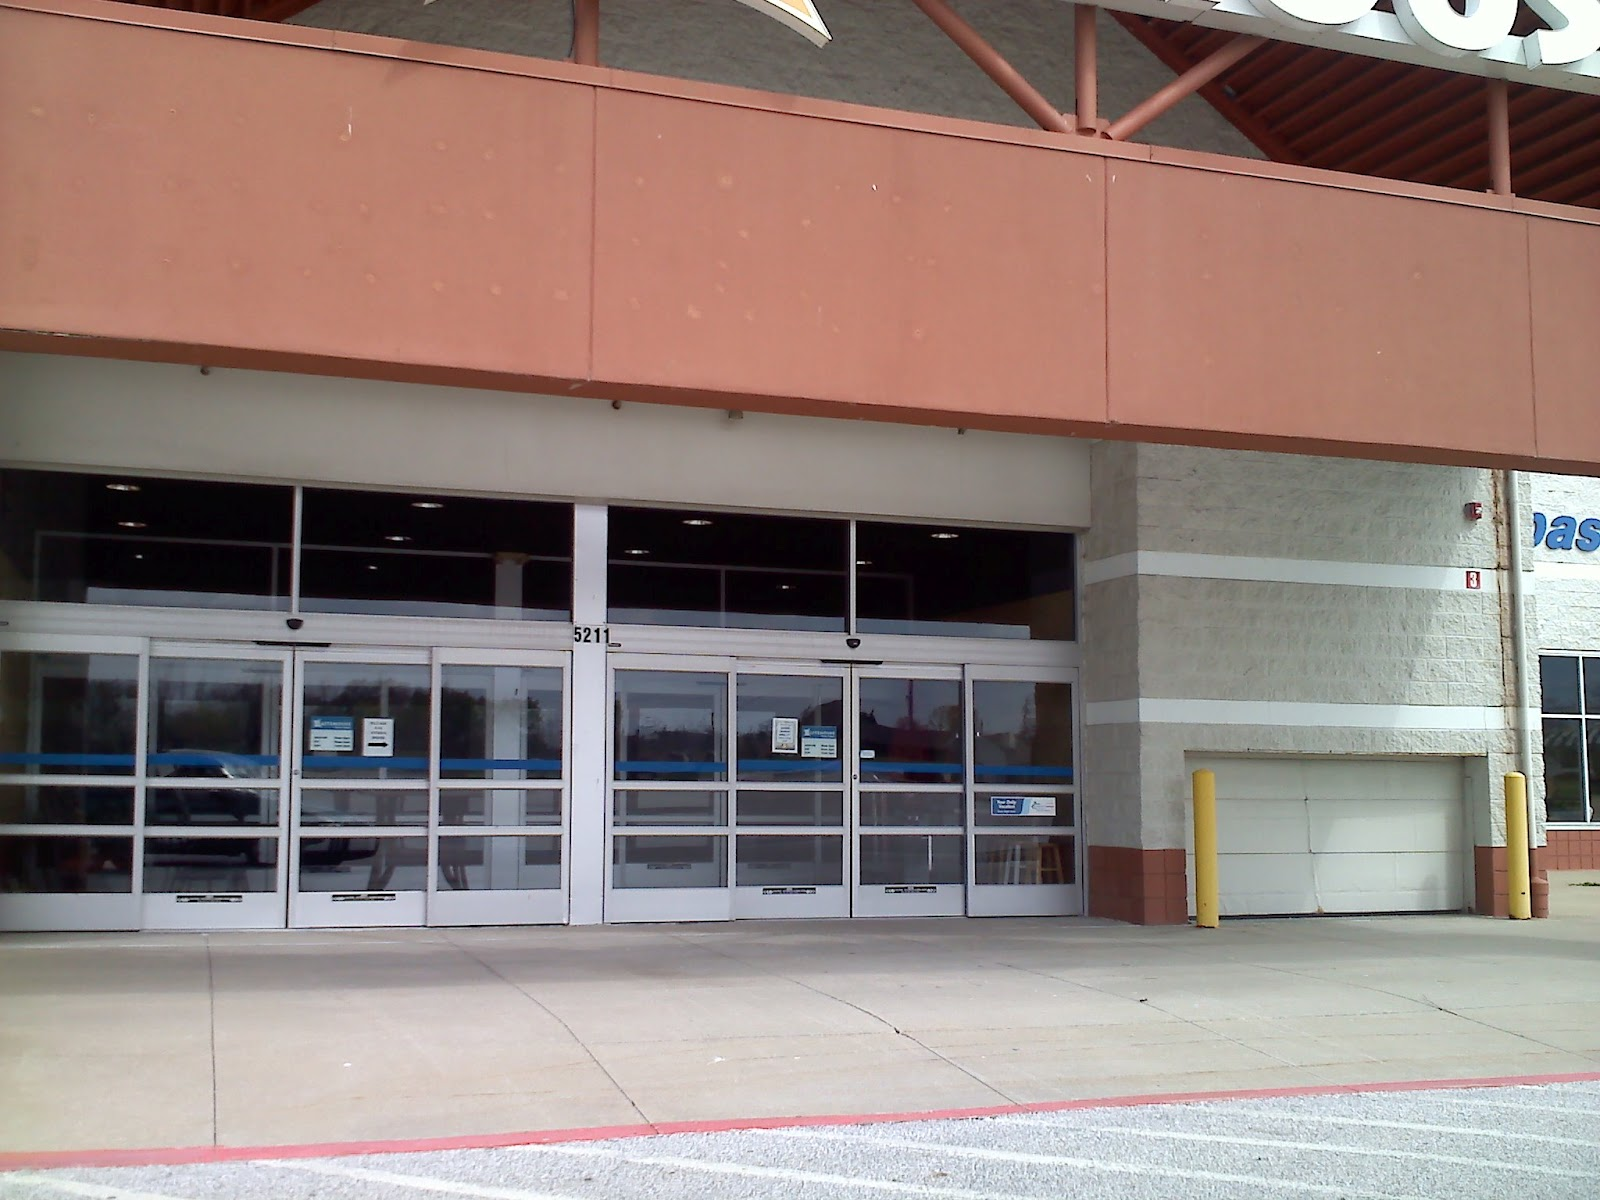 dead and dying retail former elyria ohio super kmart notice that the doors are all automatic and there is a smaller cart door that is a design element not found in older super kmart kmart stores